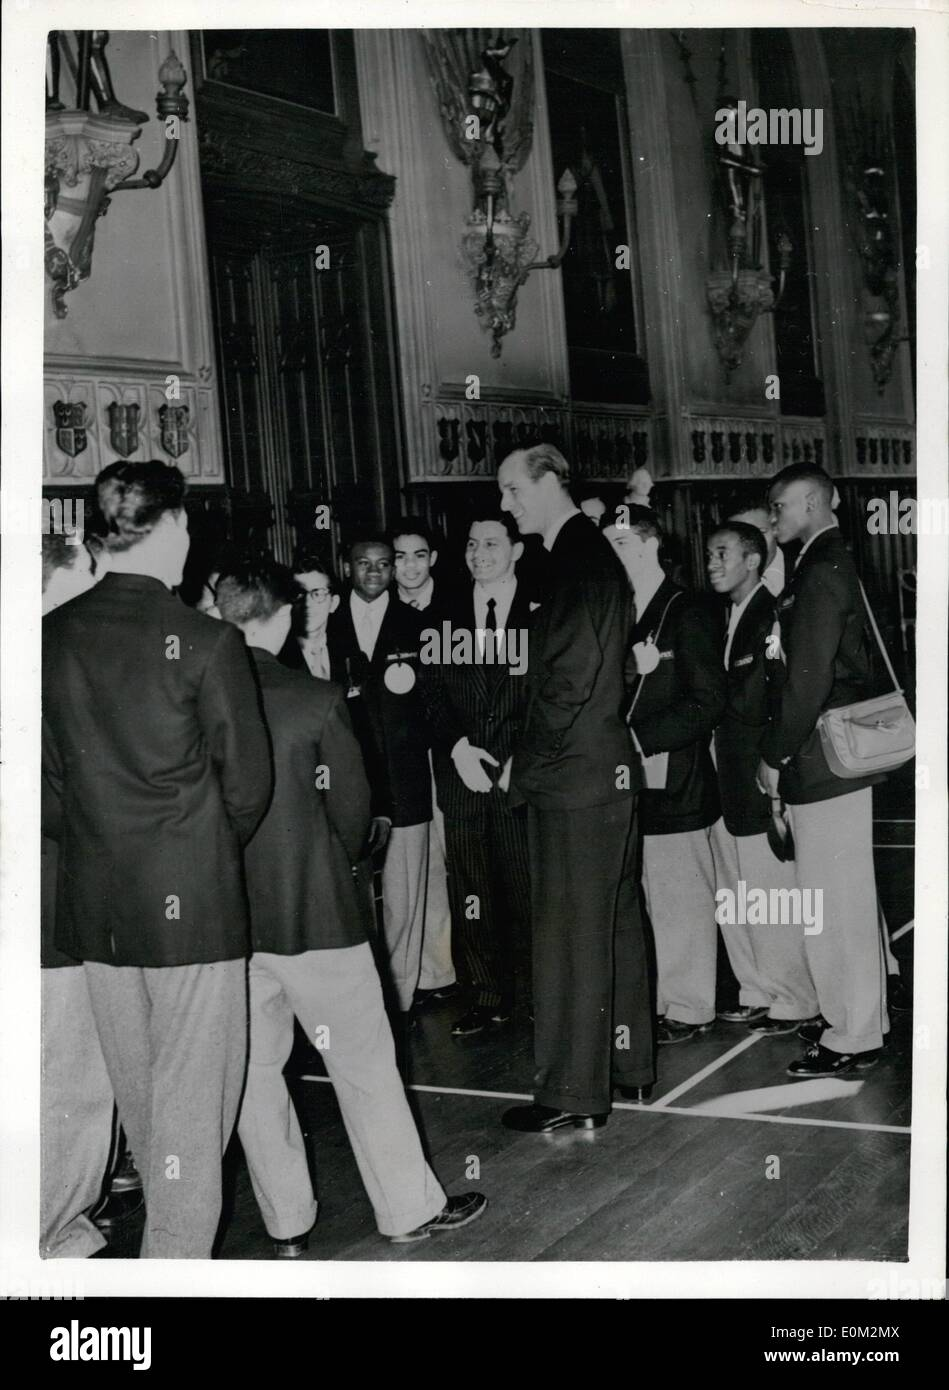 Apr. 07, 1953 - 7-4-53 American boy boxers meet the Duke of Edinburgh. Visit to Windsor Castle. A party of boy boxers from New York who are to meet Boys of the London Federation of Boys Clubs at the Empress hall on Wednesday were taken on a tour of Windsor Castle by H.R.H. The Duke of Edinburgh today. Keystone Photo Shows: The Duke of Edinburgh chats to the New York Boy Boxers at the famous St. George's Hall, Windsor Castle. - Stock Image